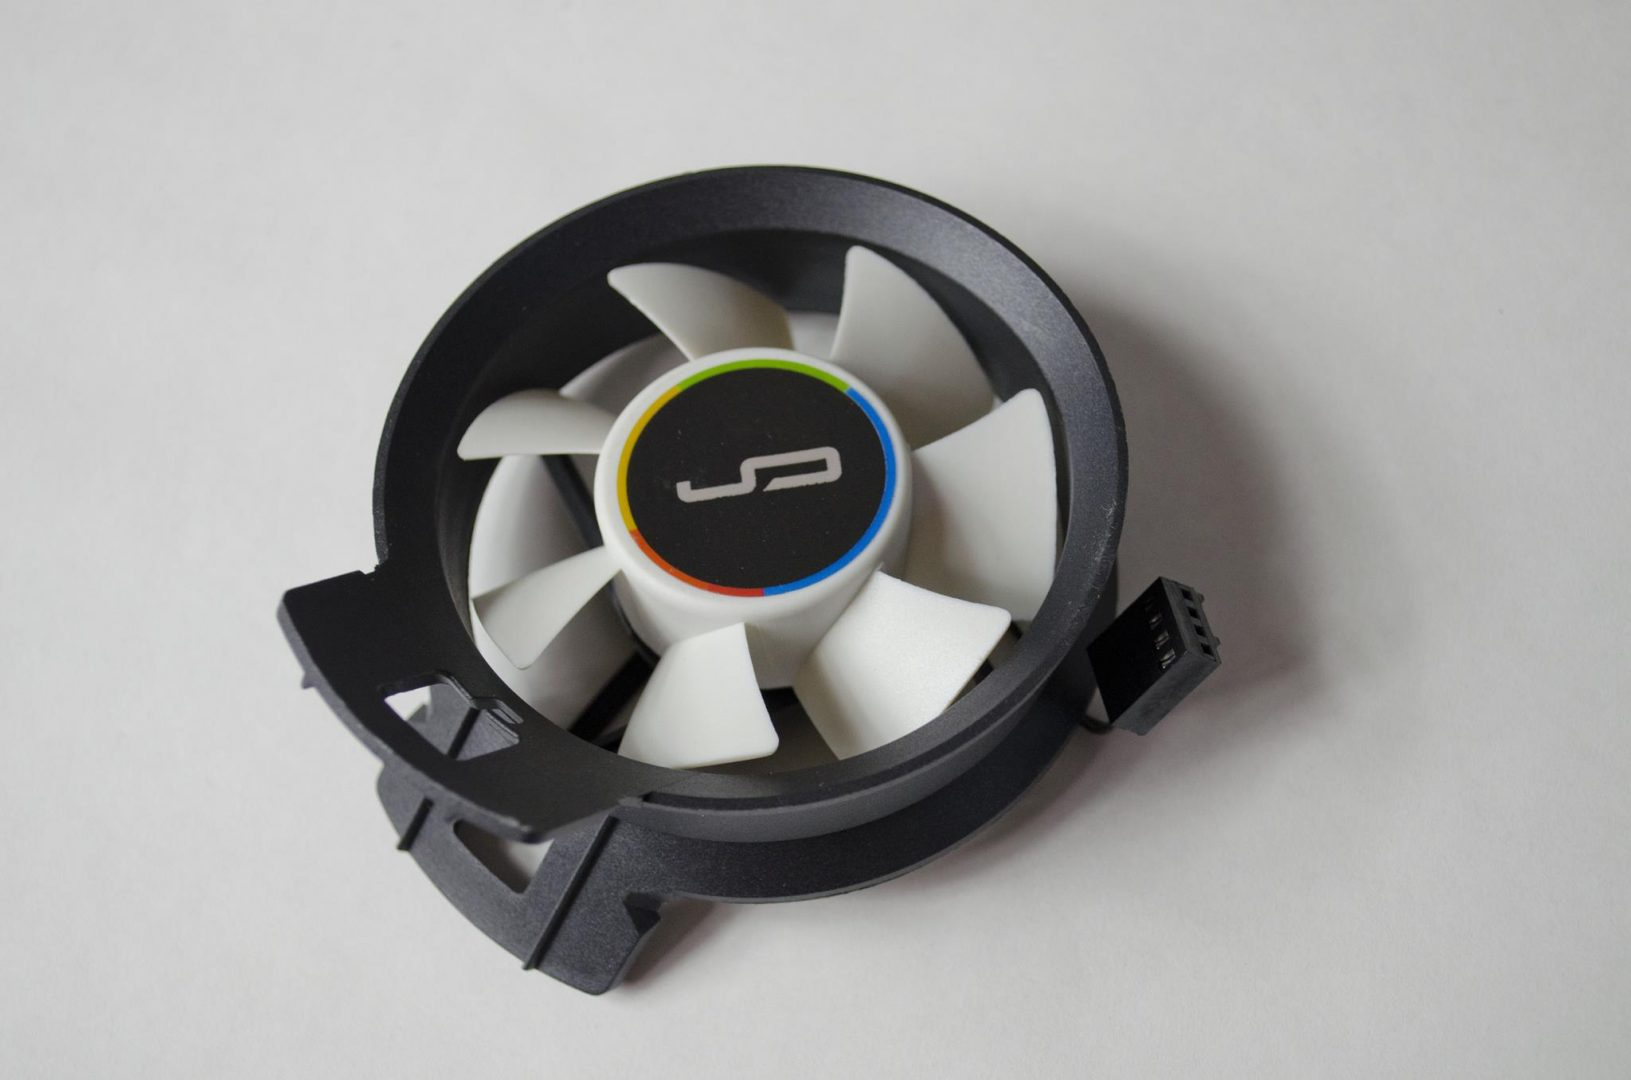 Cryorig a40 2400mm ultimate aio cpu cooler review_2